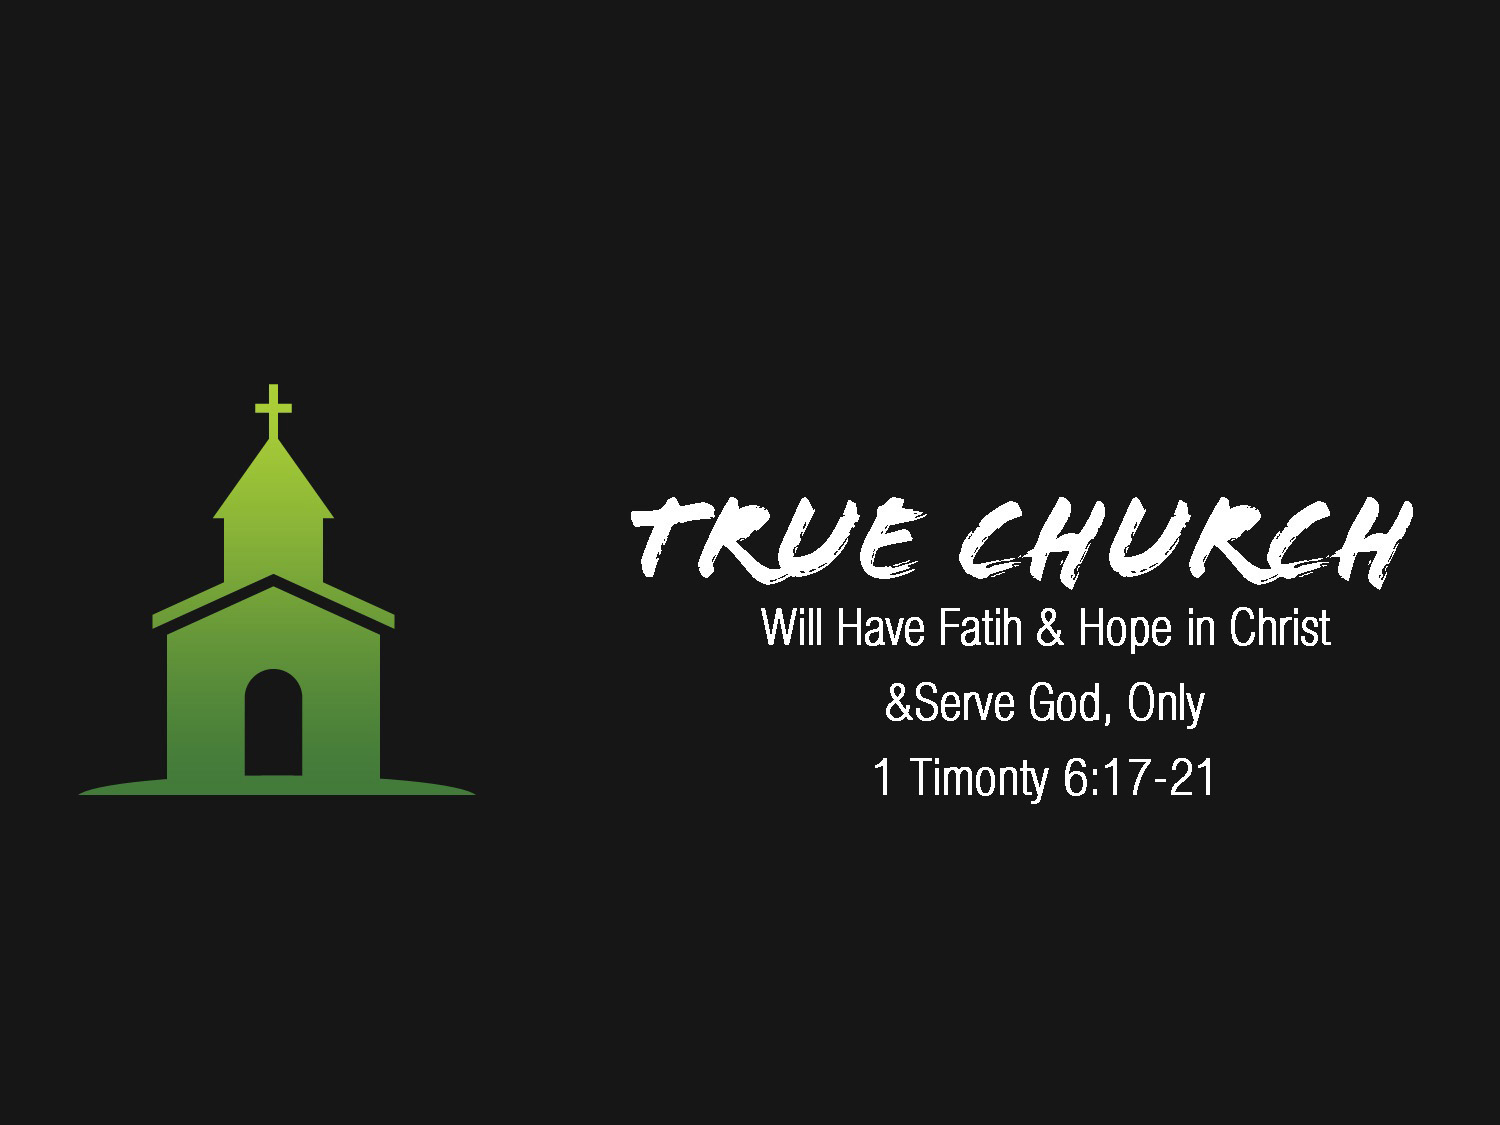 1 Timothy 6v17-21 True Church Will Have Faith & Hope in Christ & Serve God, Only